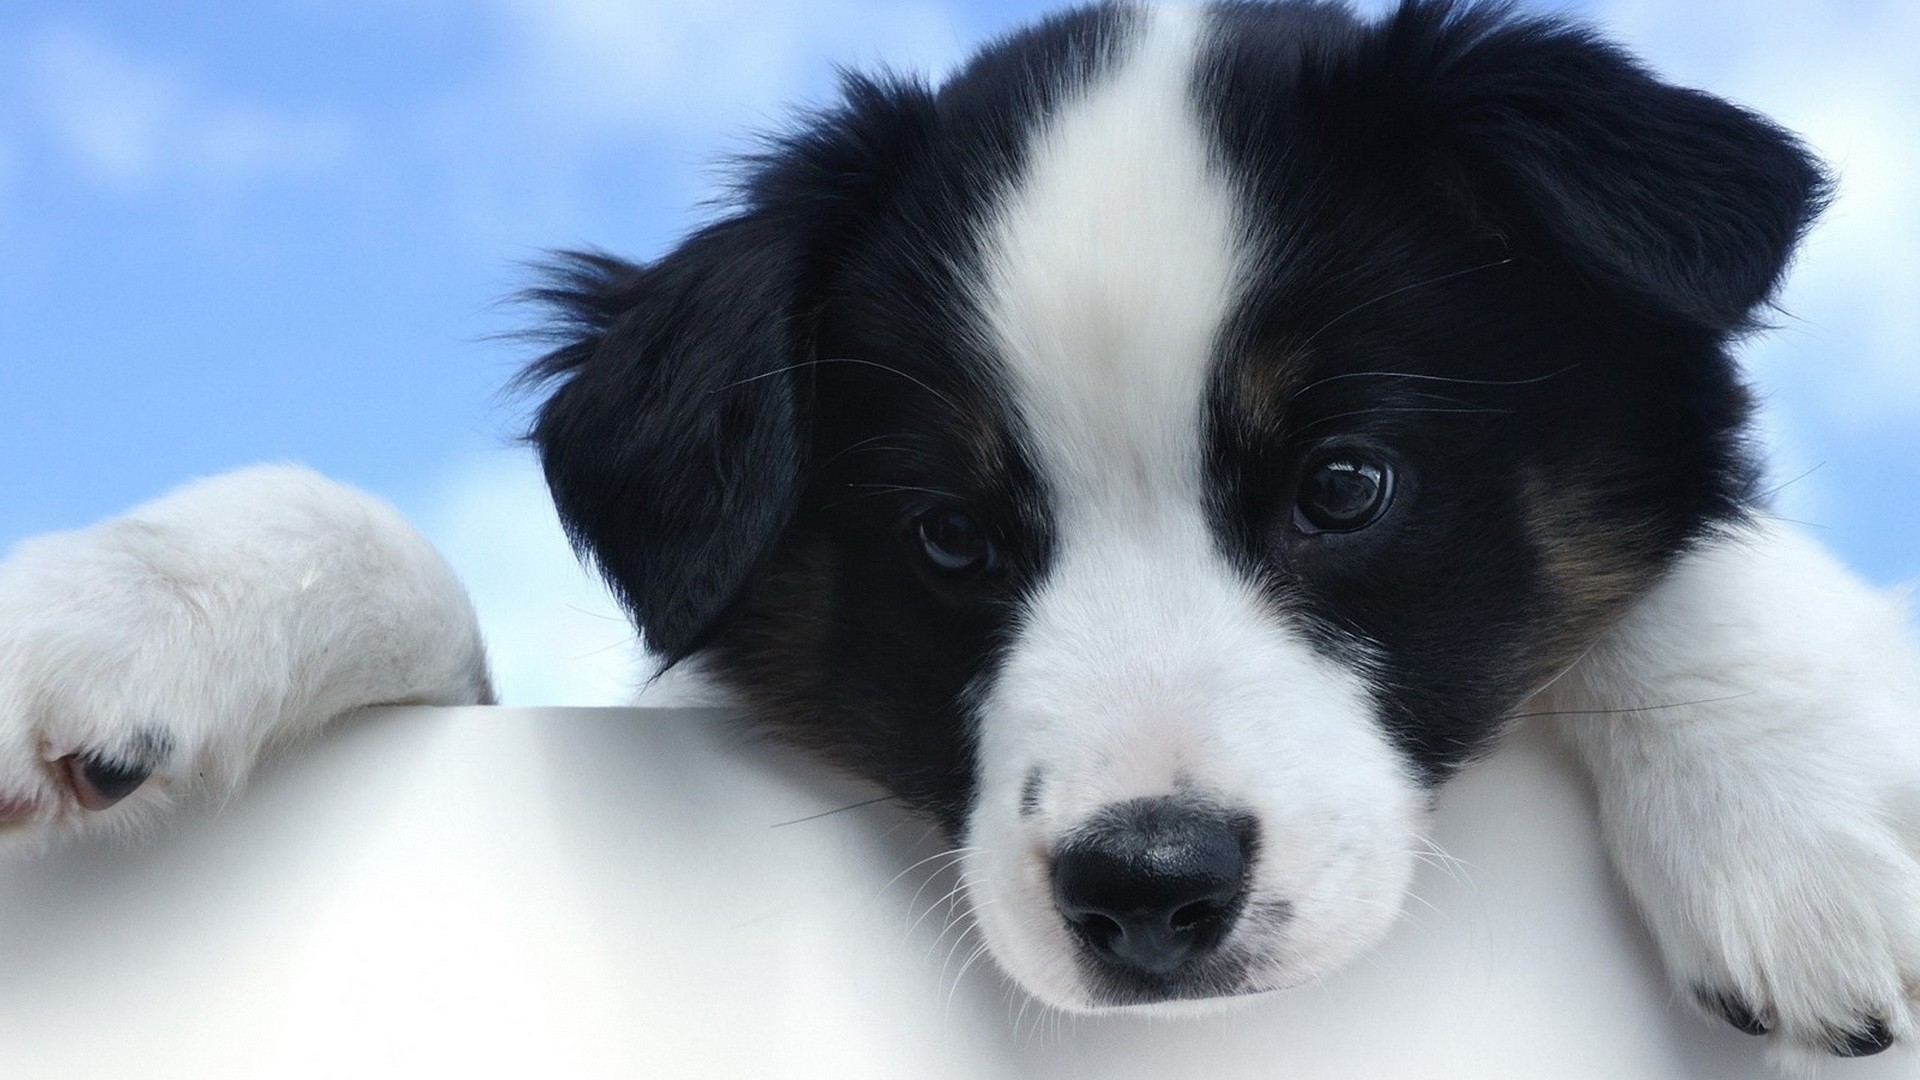 1920x1080 Cute White And Black Puppy Desktop Pc And Mac Wallpaper